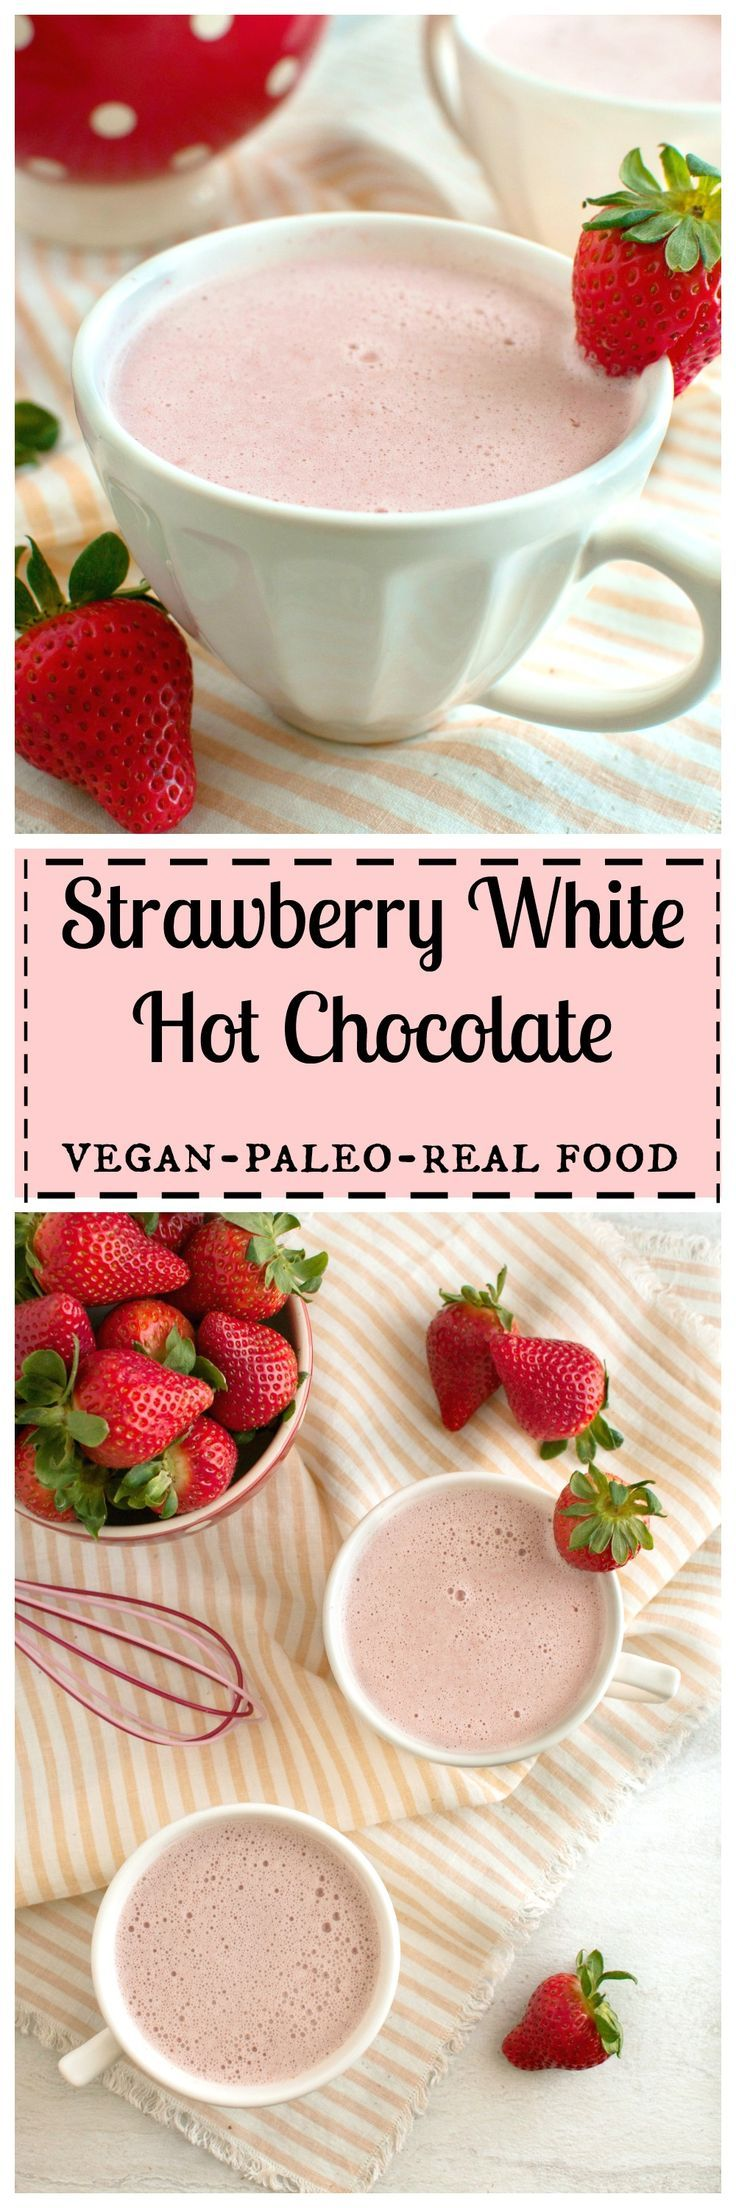 Strawberry White Hot Chocolate 5 From Theorganicrd1 Vegan Drinks Chocolate Recipes Hot Chocolate Recipes